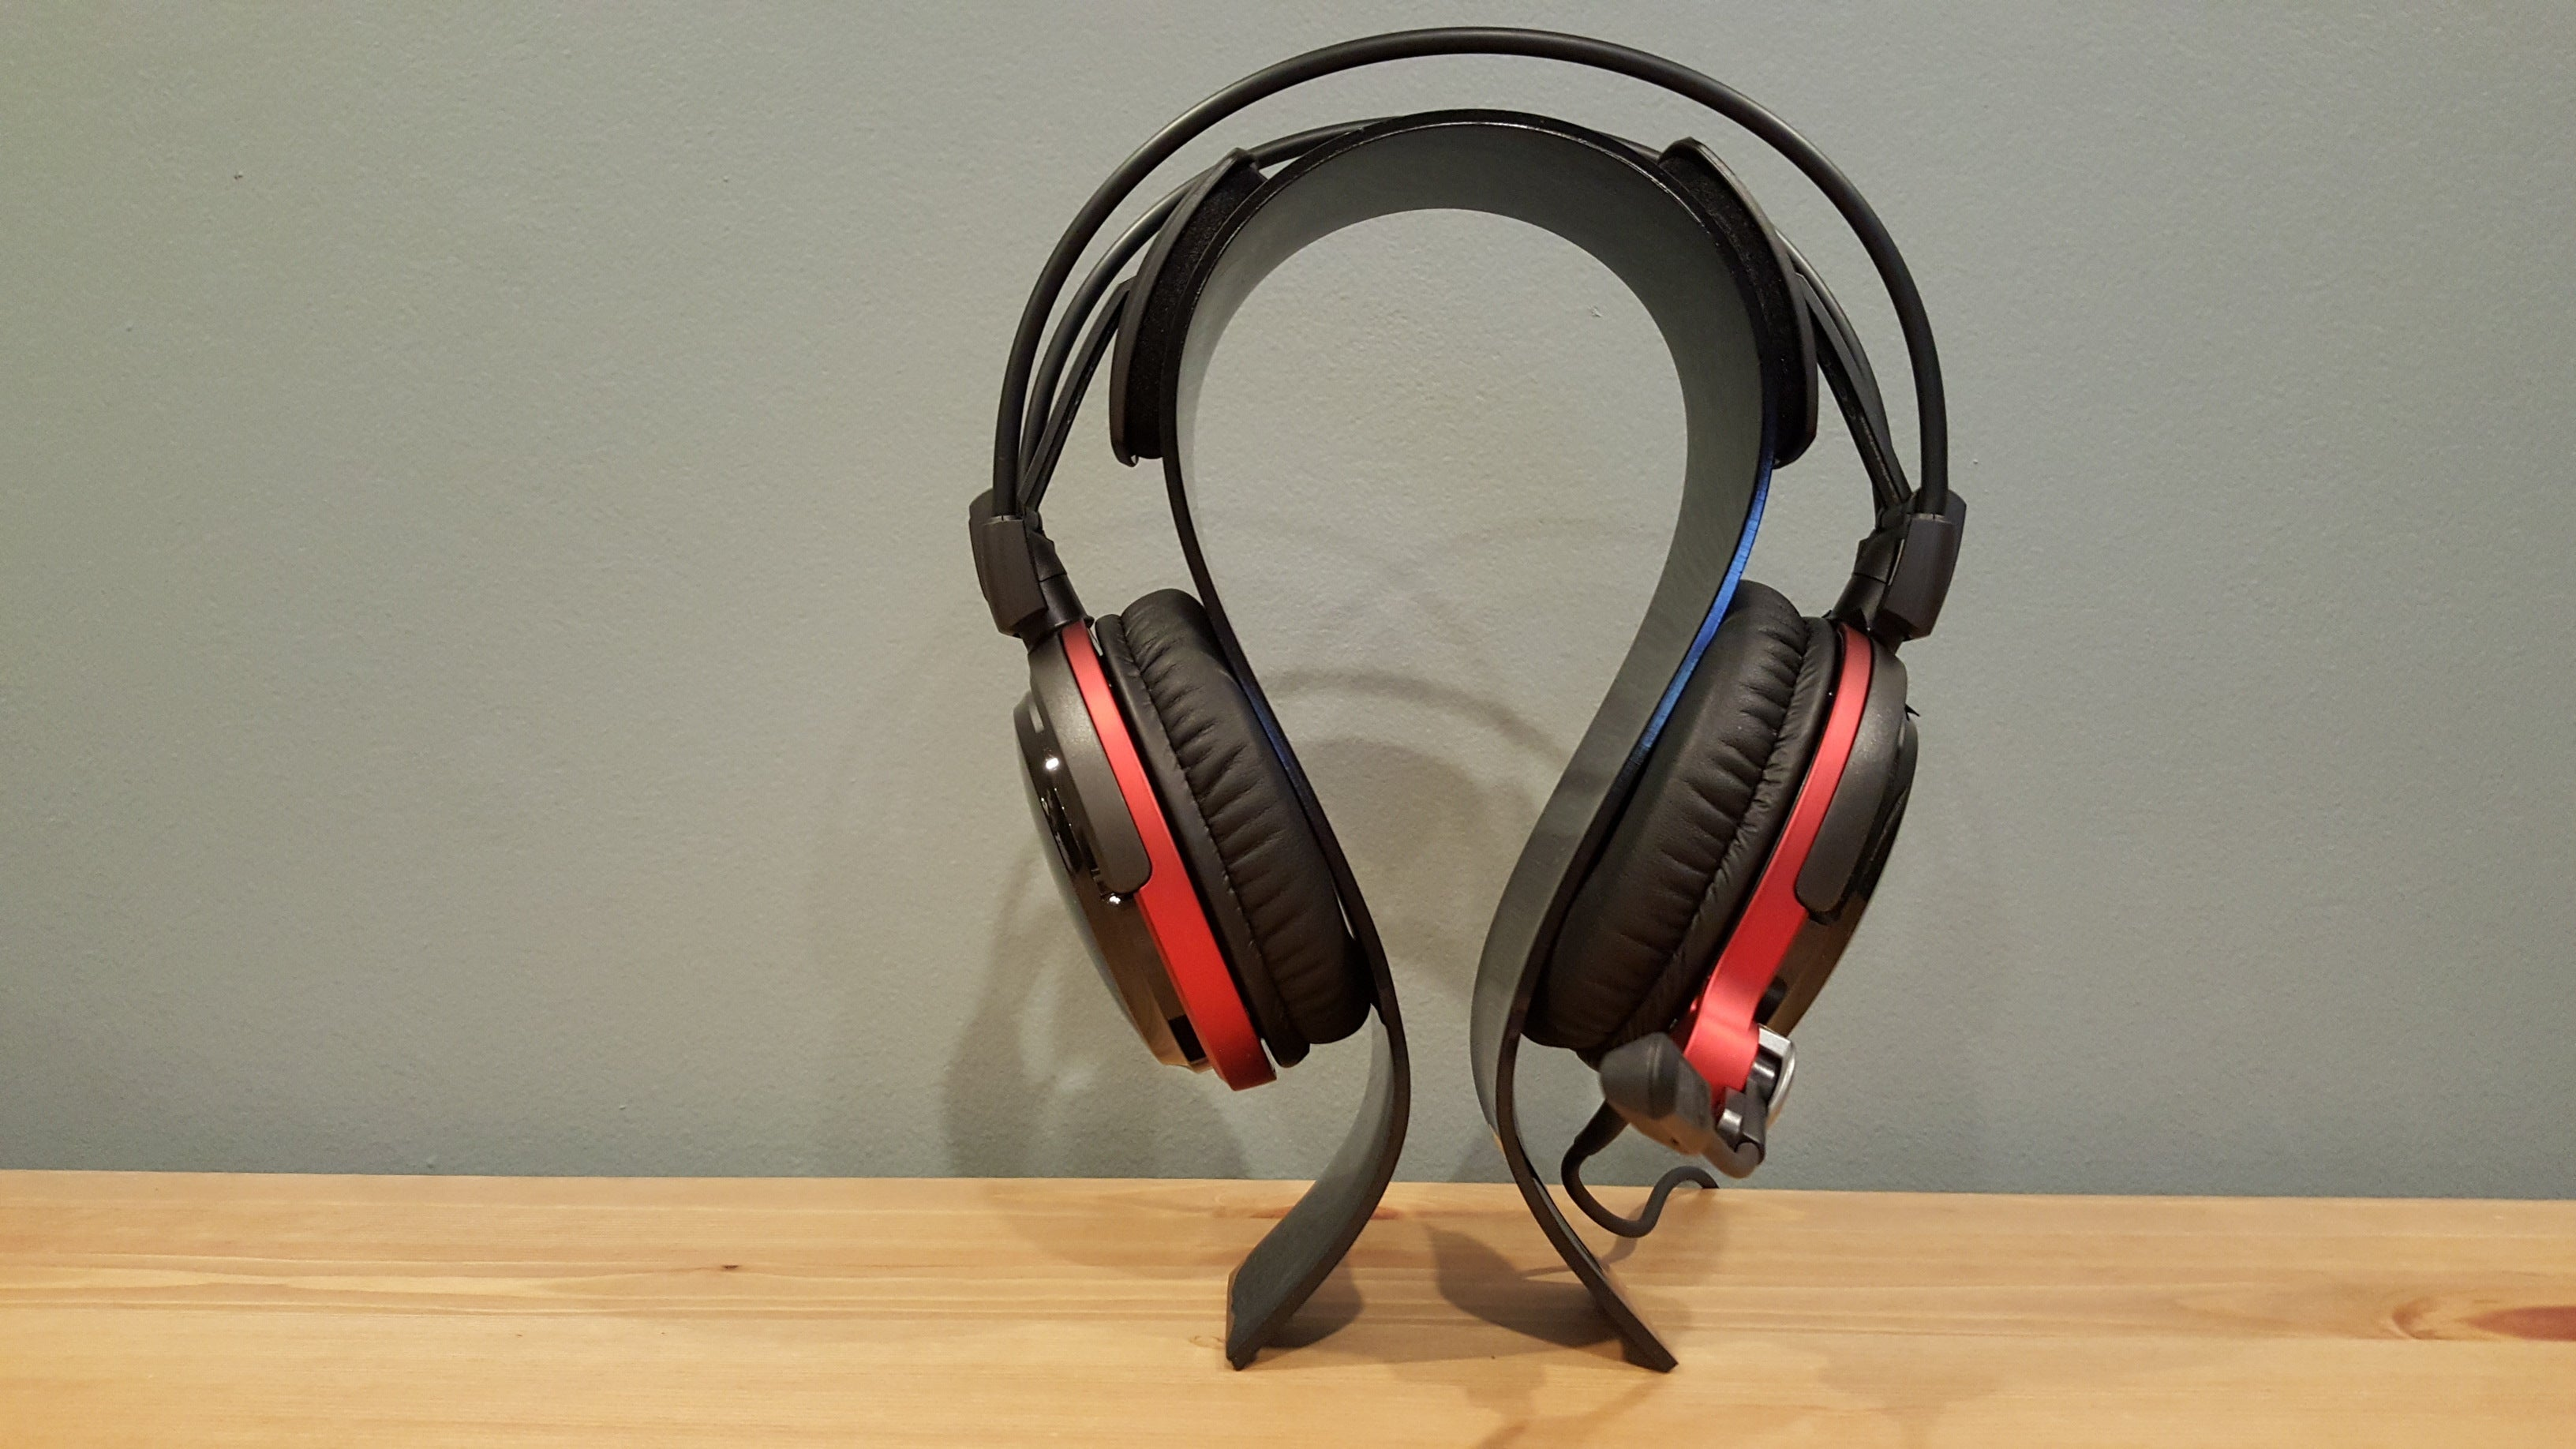 Audio-Technica ATH-AG1X review: A good gaming headset with